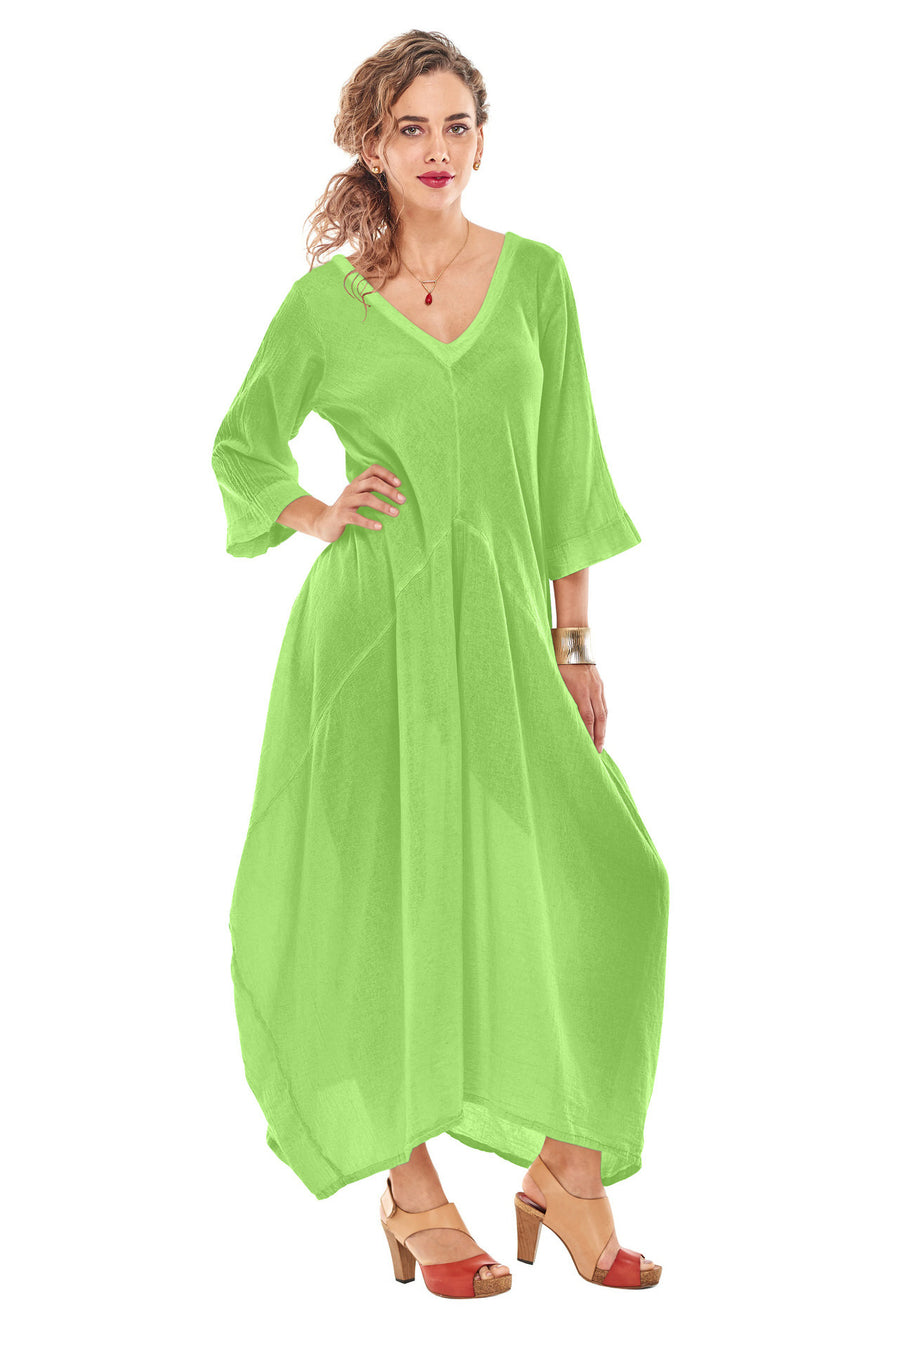 Oh My Gauze Bella Dress-Pear